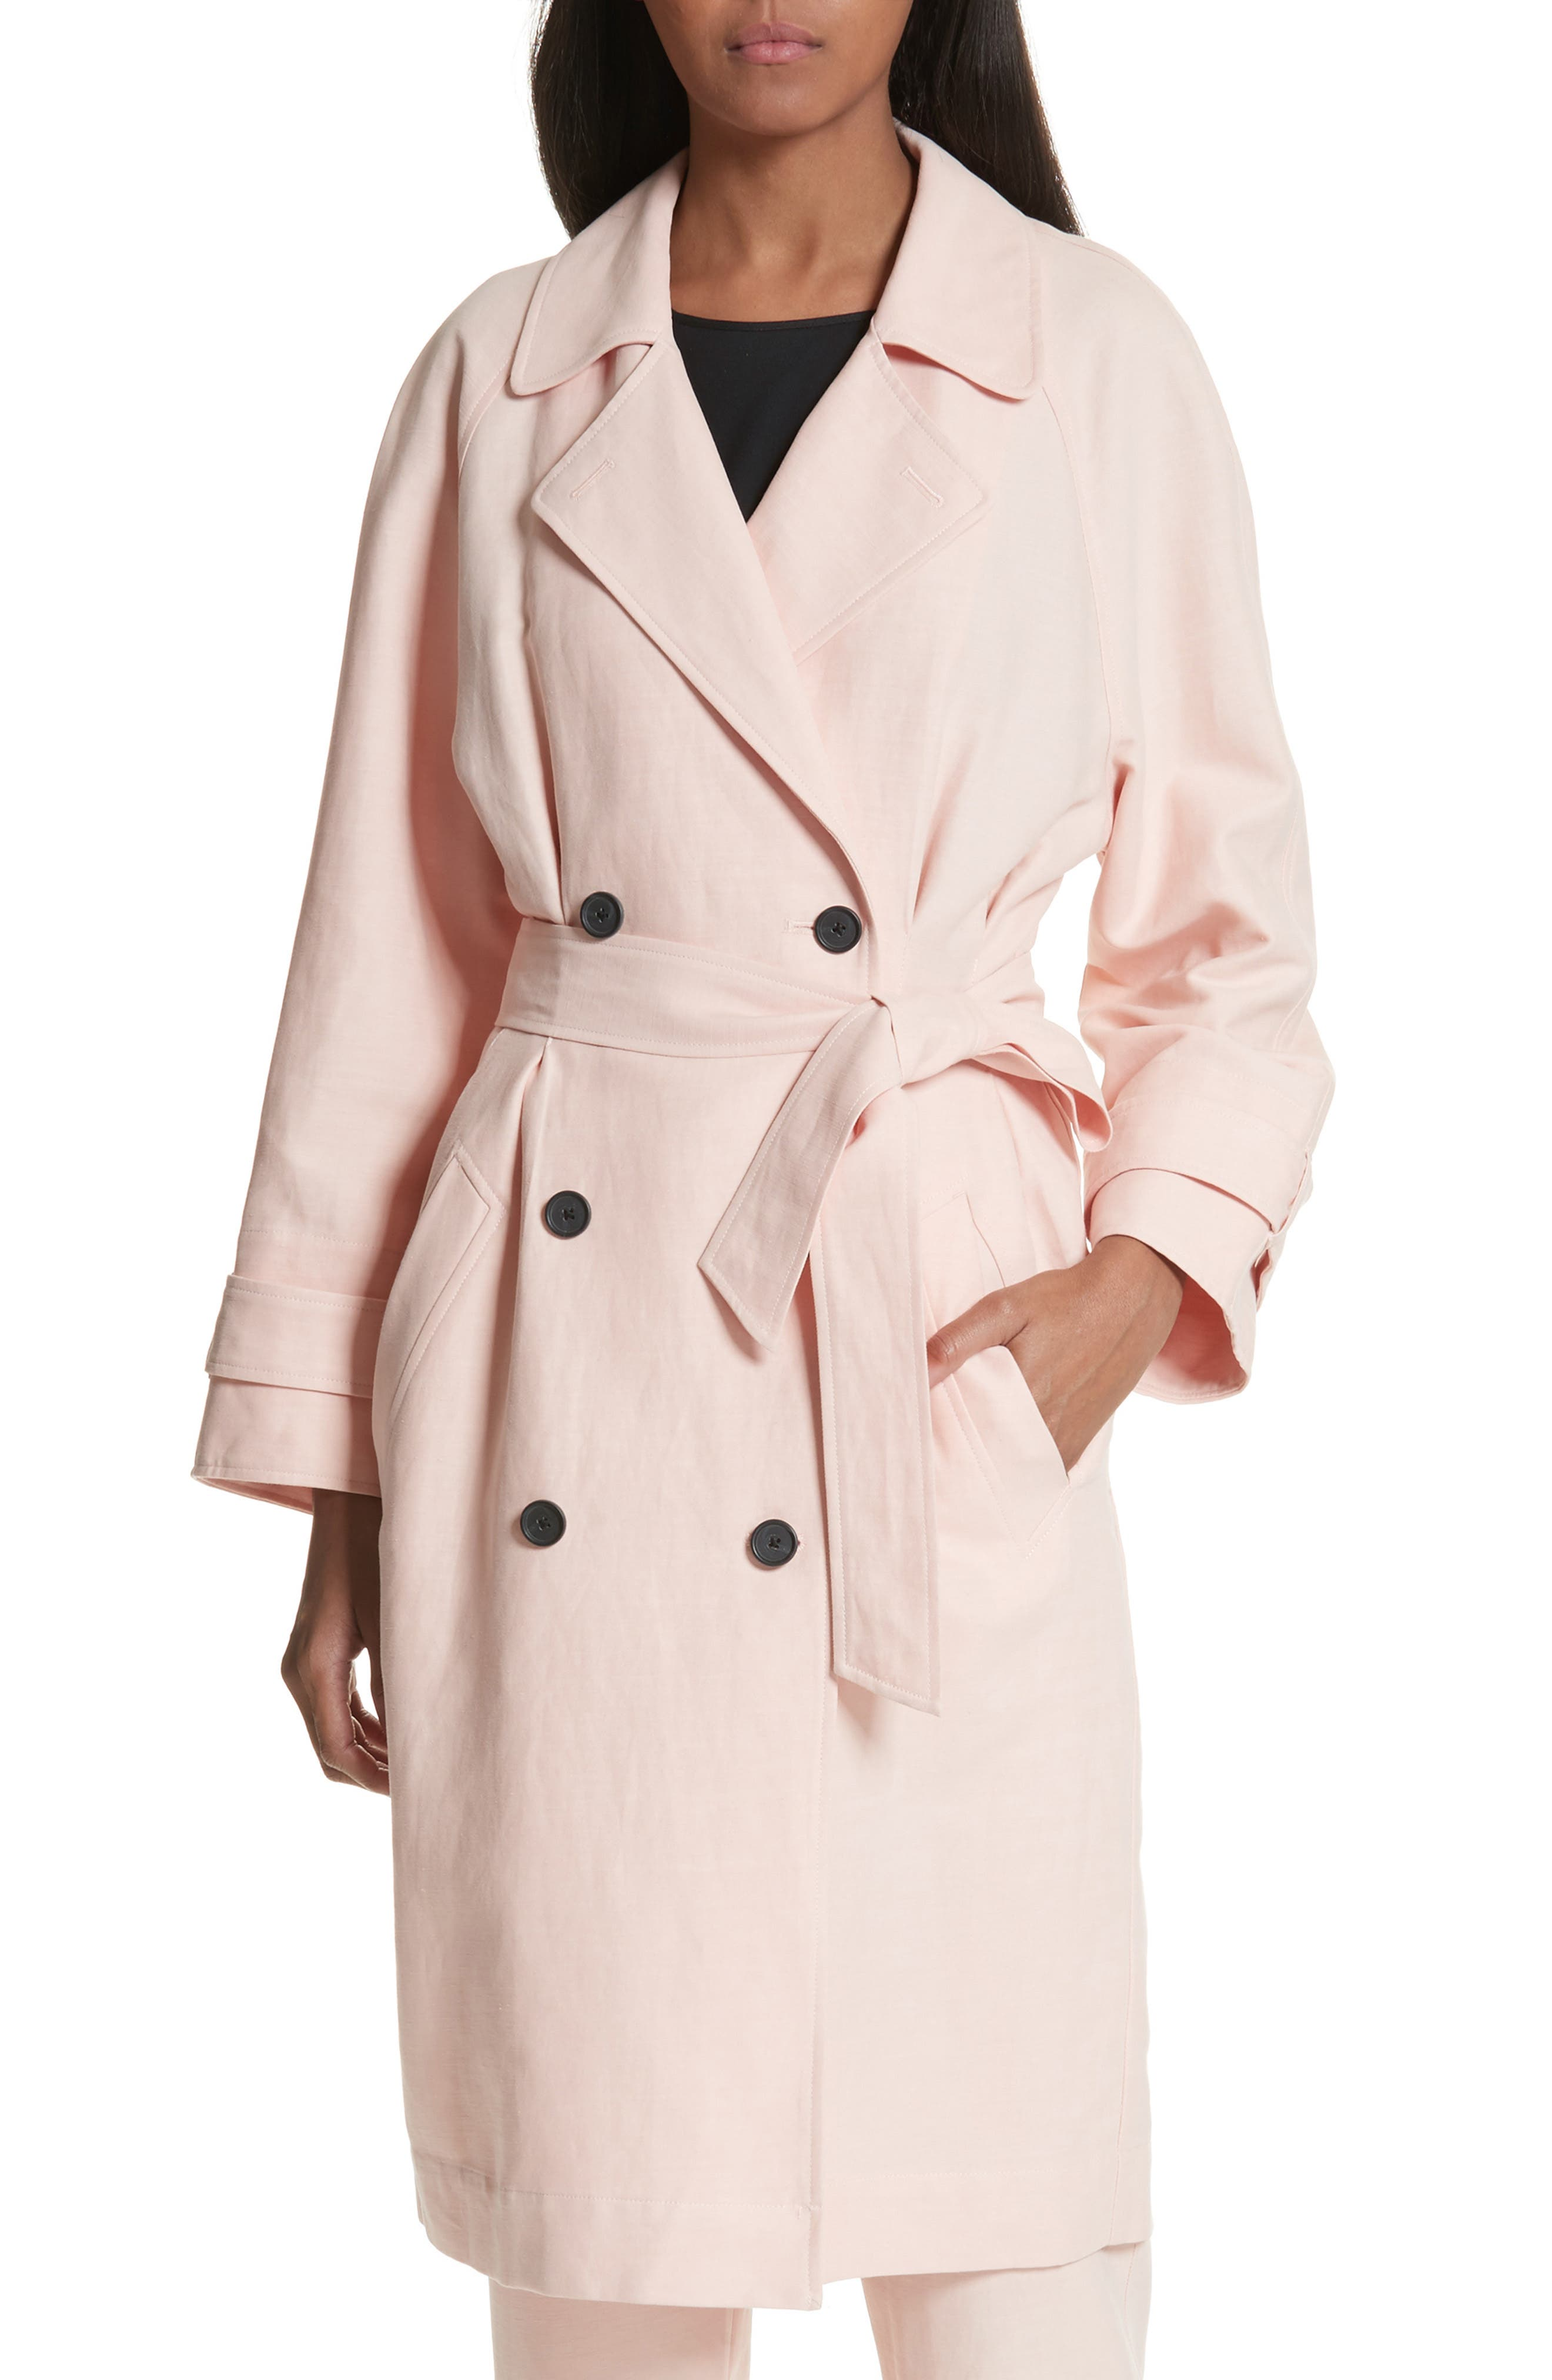 Damonica Trench Coat,                             Alternate thumbnail 7, color,                             Washed Rose